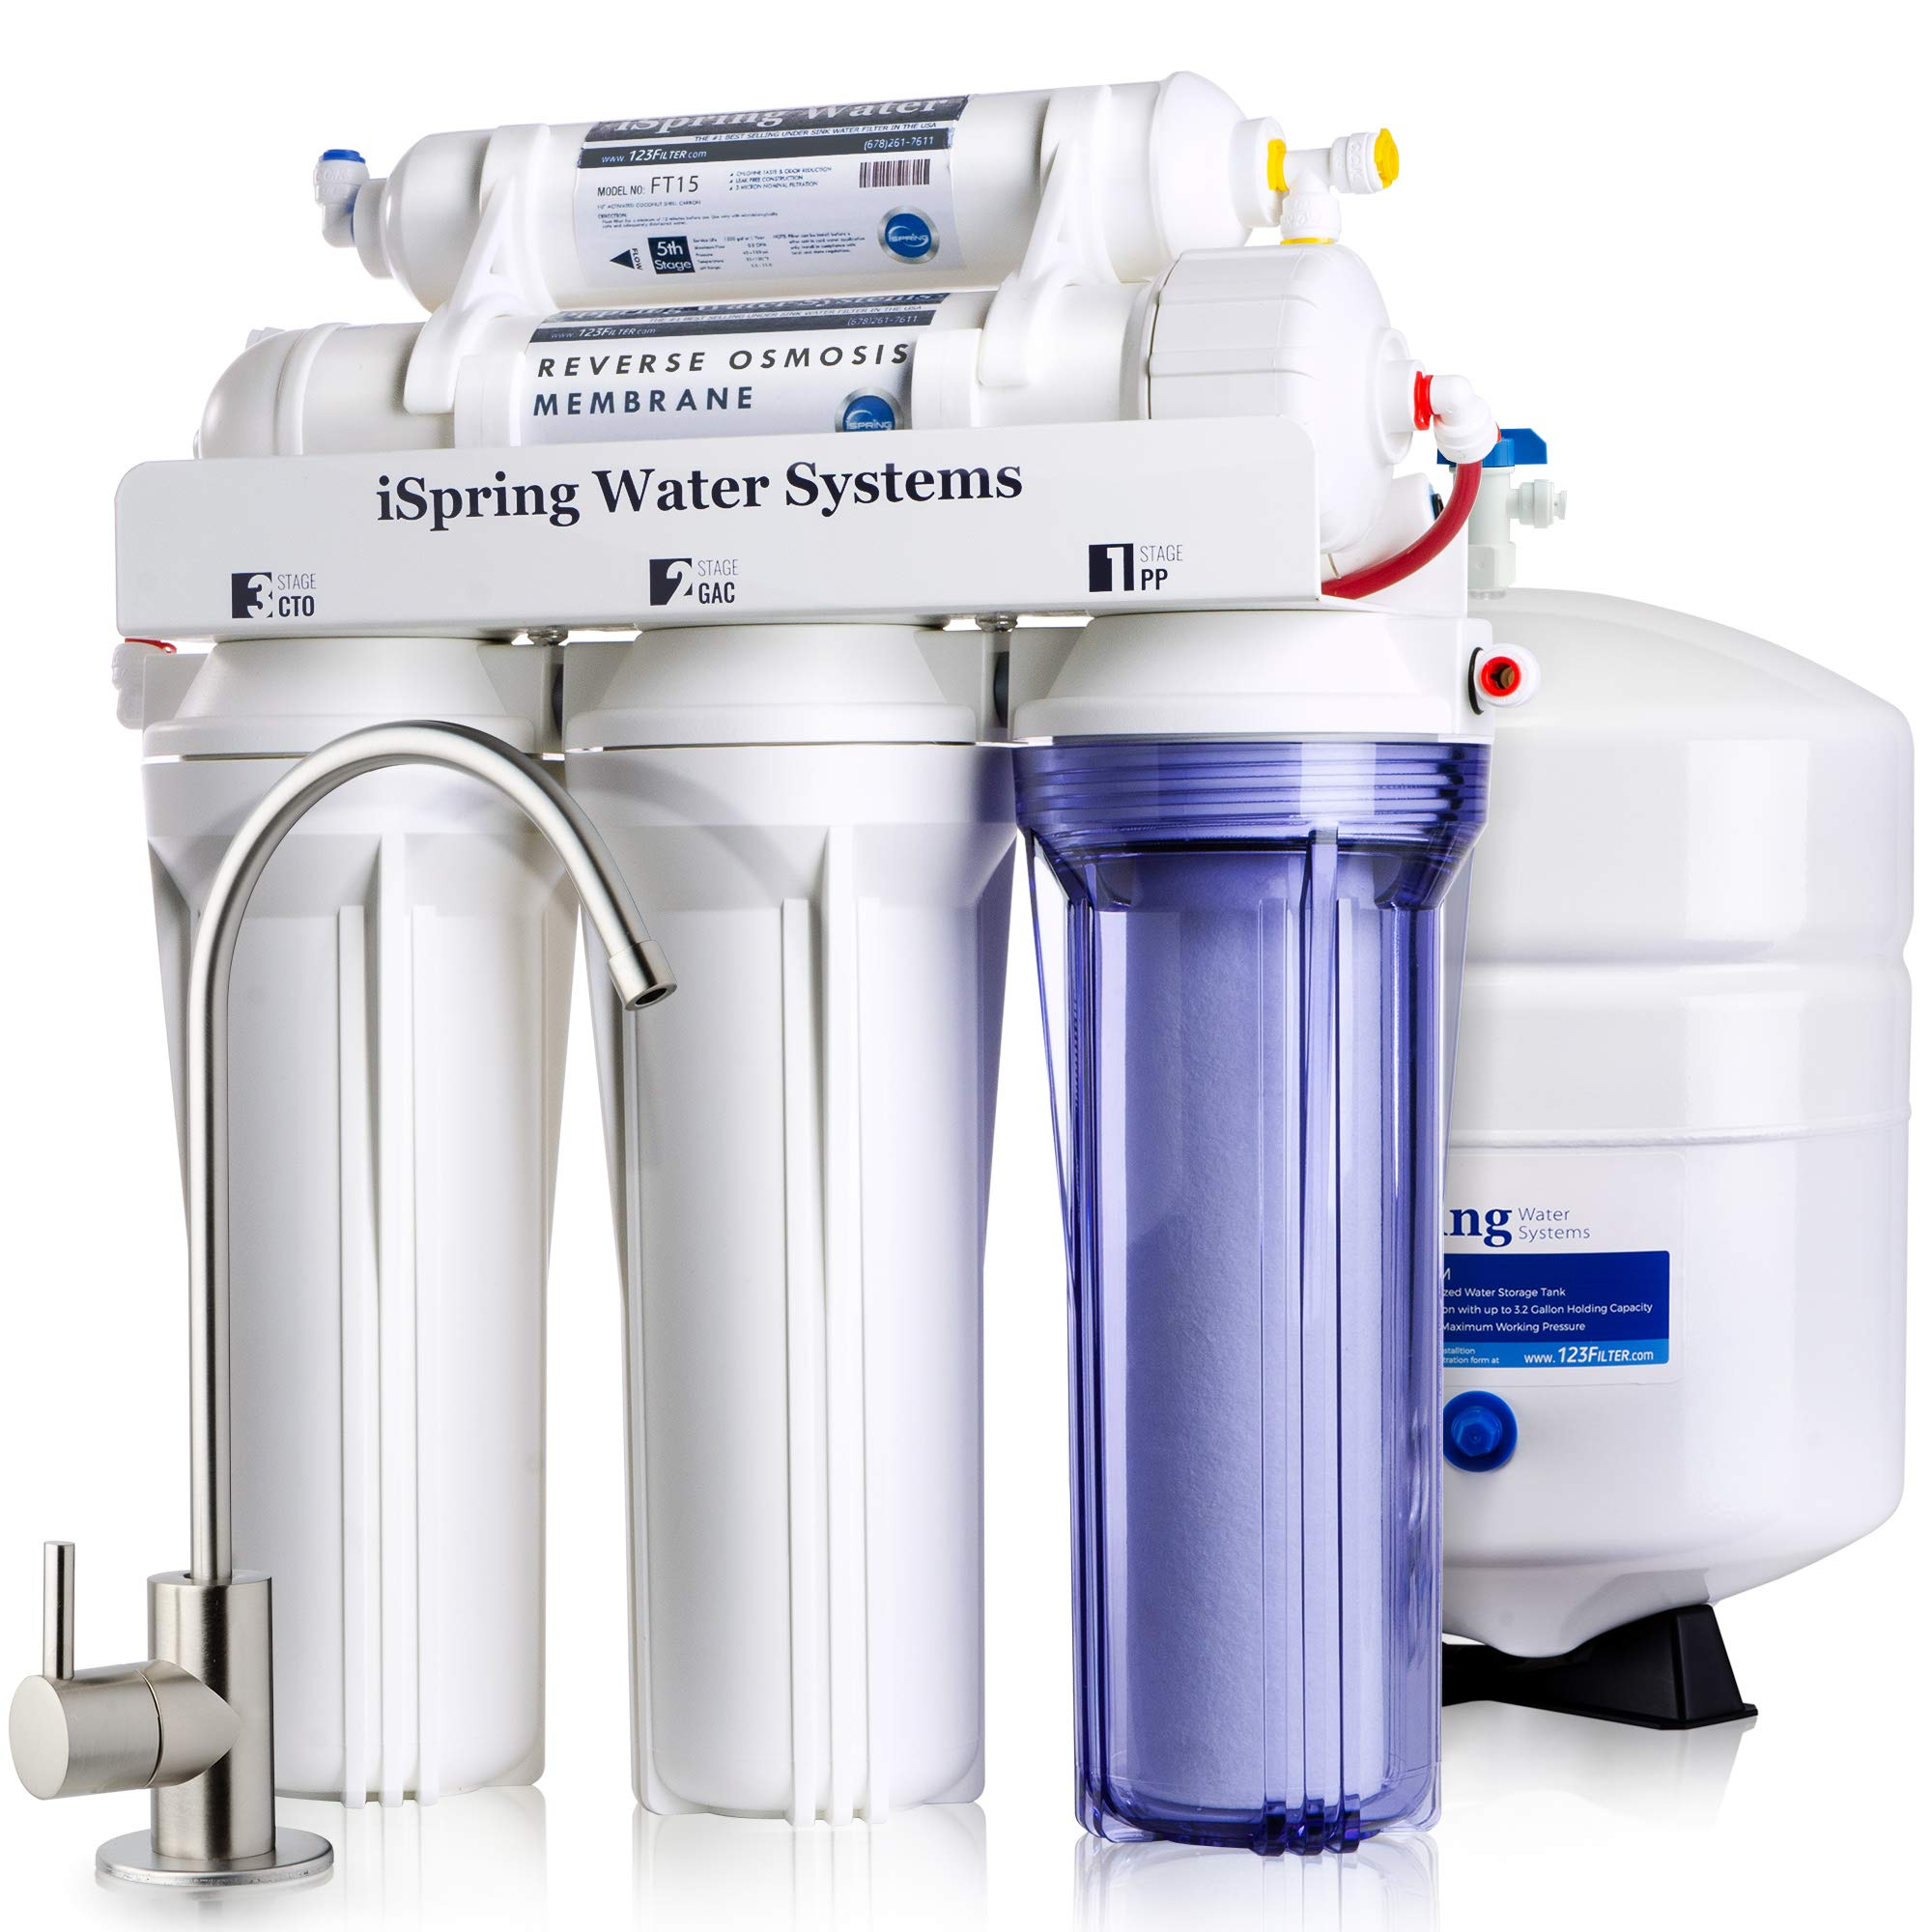 iSpring RCC7 High Capacity Under Sink 5-Stage Reverse Osmosis Drinking Filtration System and Ultimate Water Softener, White by iSpring